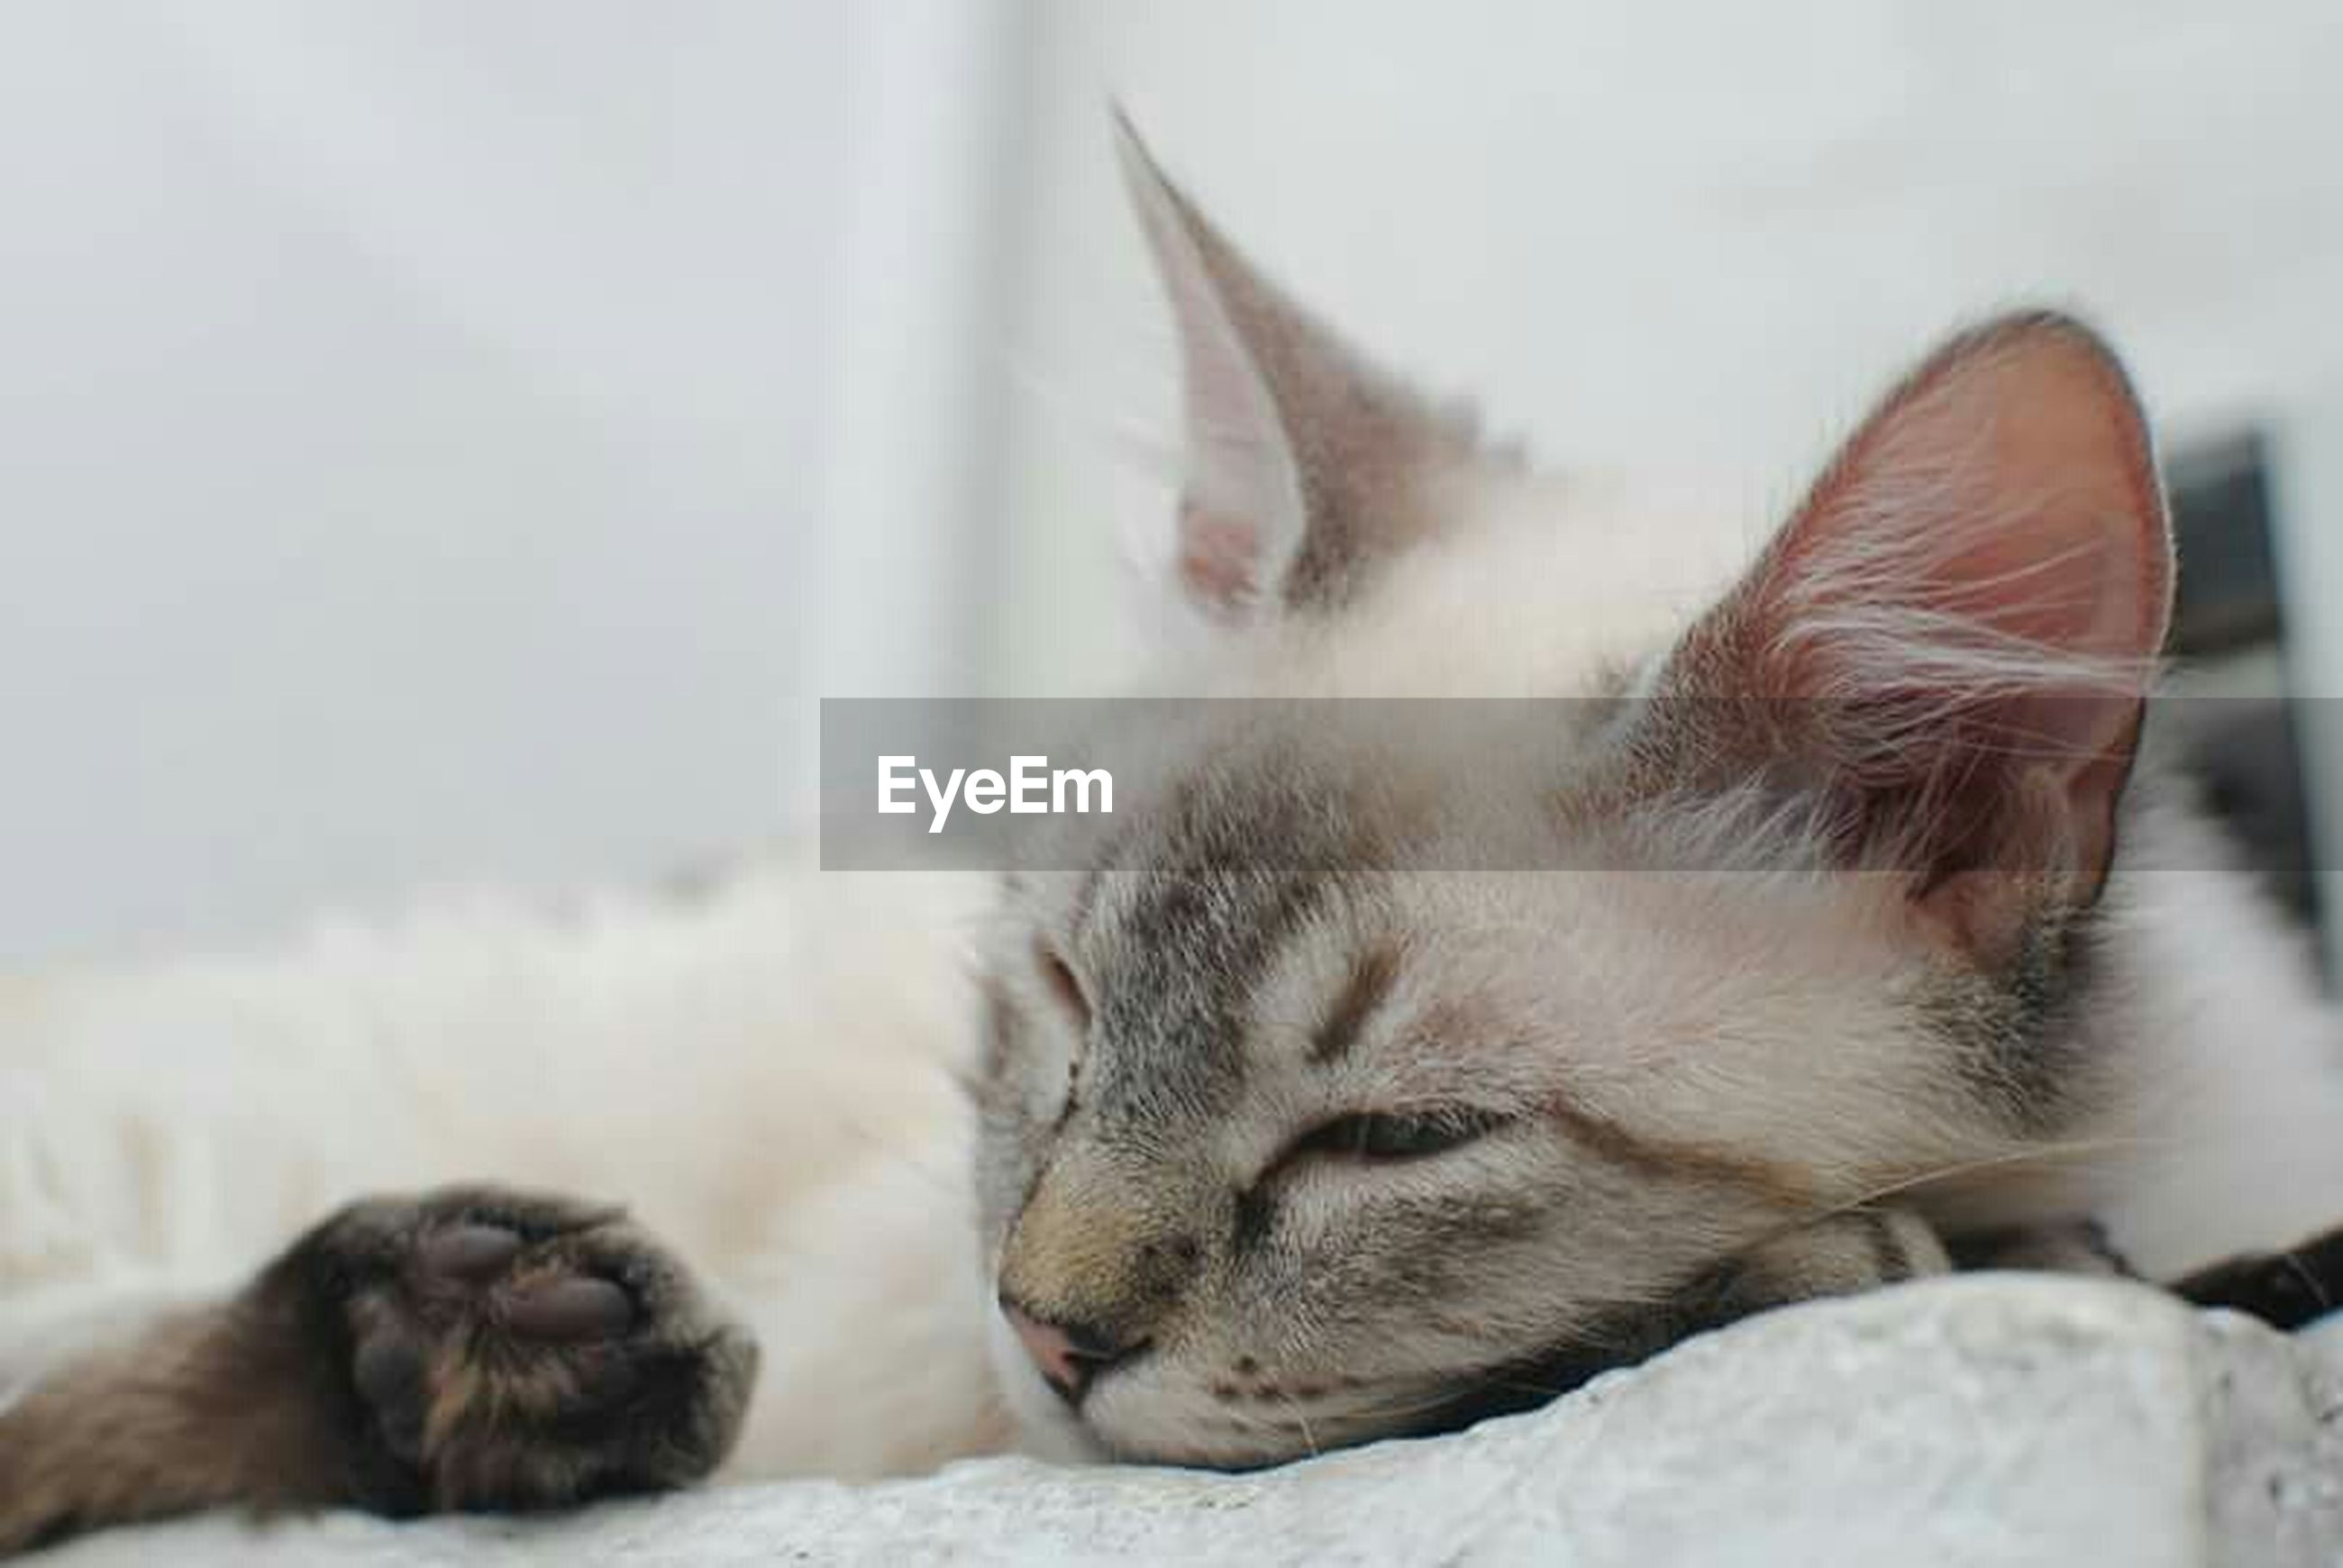 animal themes, one animal, domestic animals, pets, mammal, domestic cat, cat, relaxation, feline, resting, sleeping, indoors, whisker, lying down, close-up, eyes closed, focus on foreground, relaxing, home interior, two animals